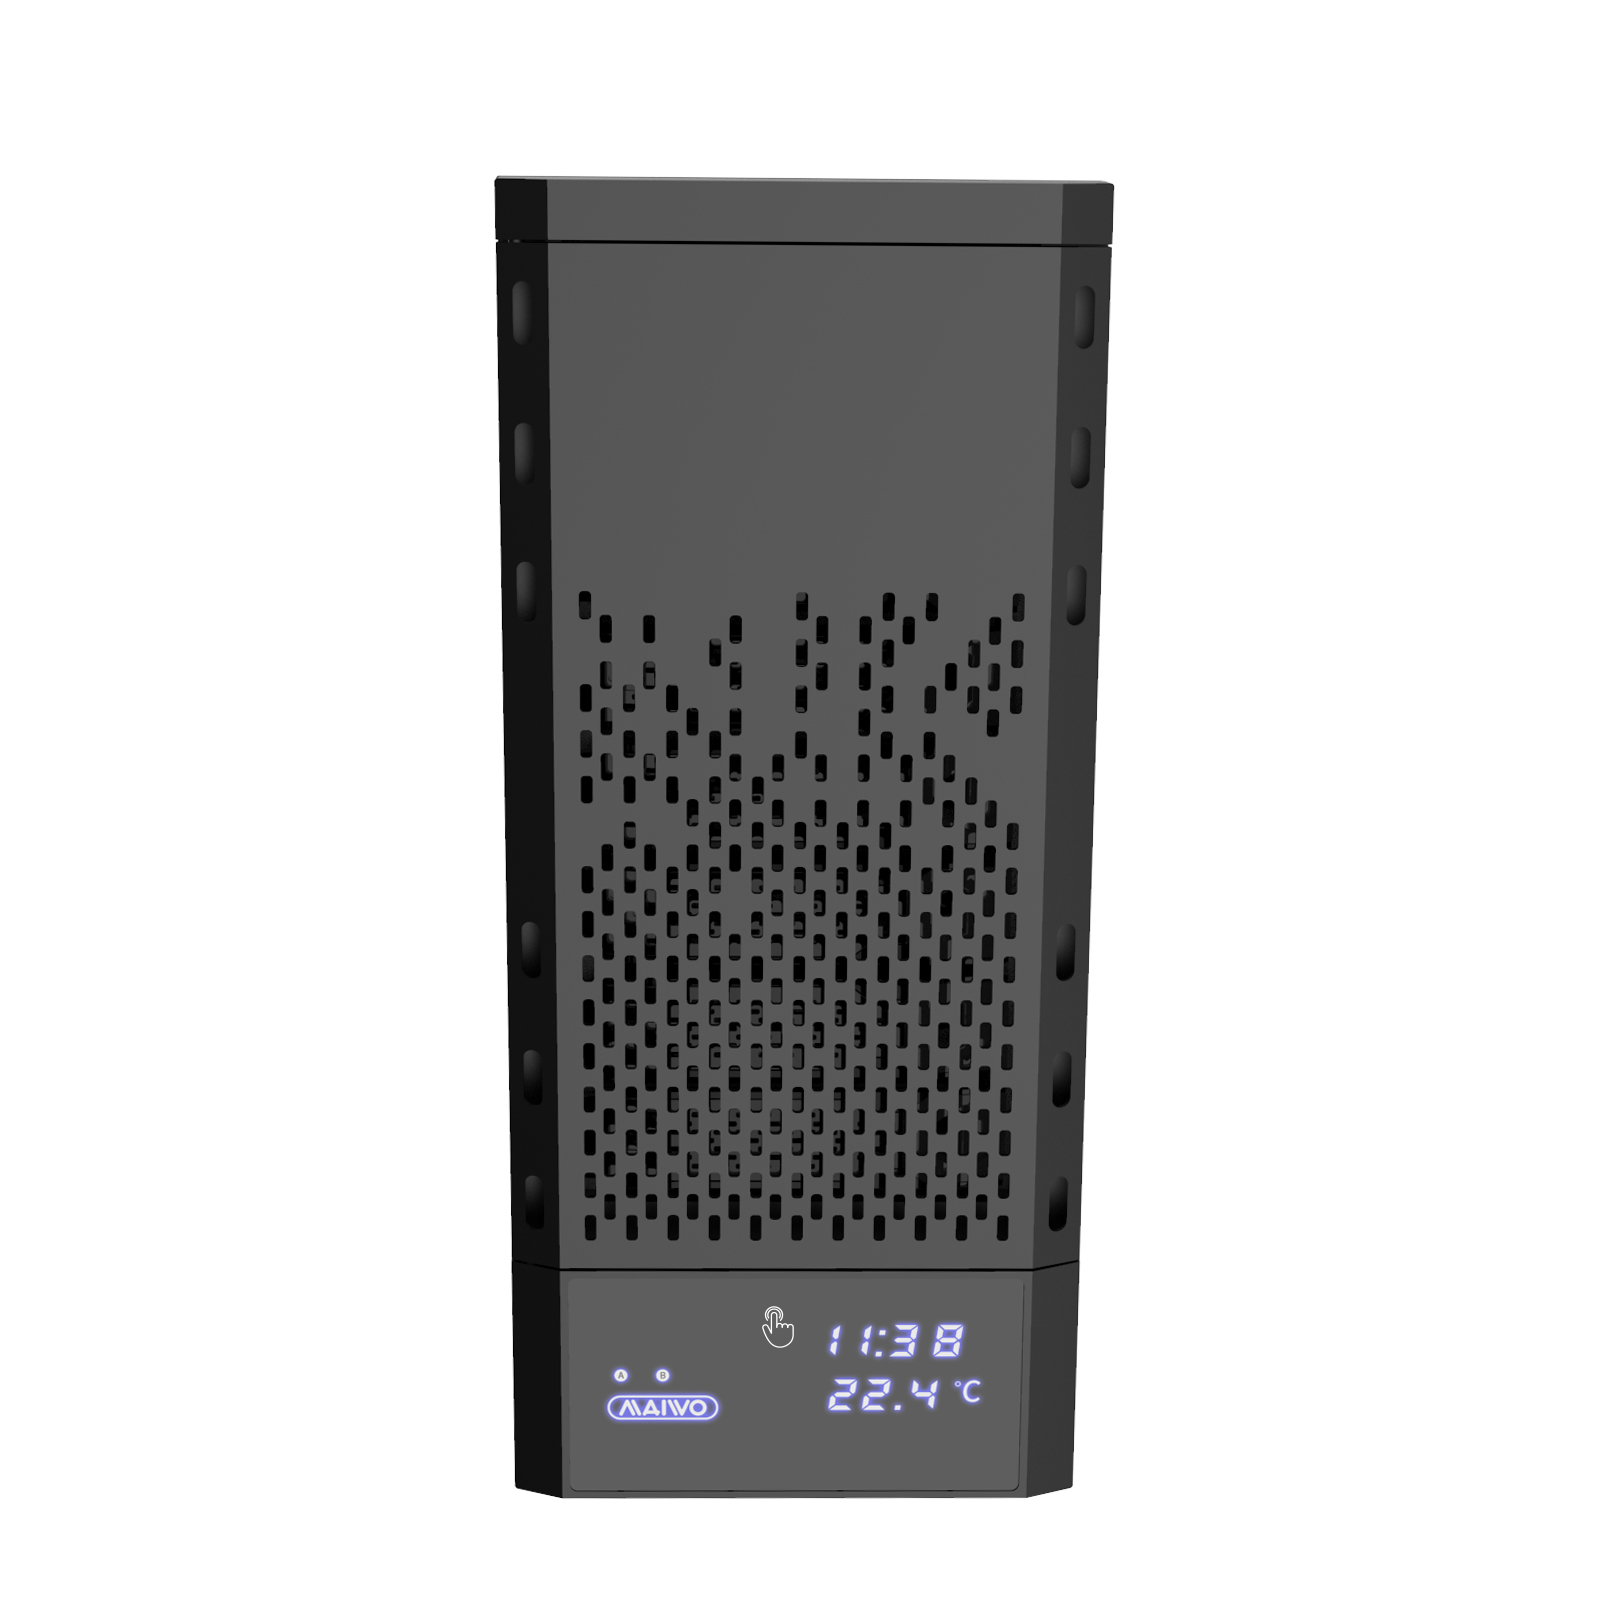 MAIWO K8AA multibay type C RAID HDD Enclosure with touch screen smart